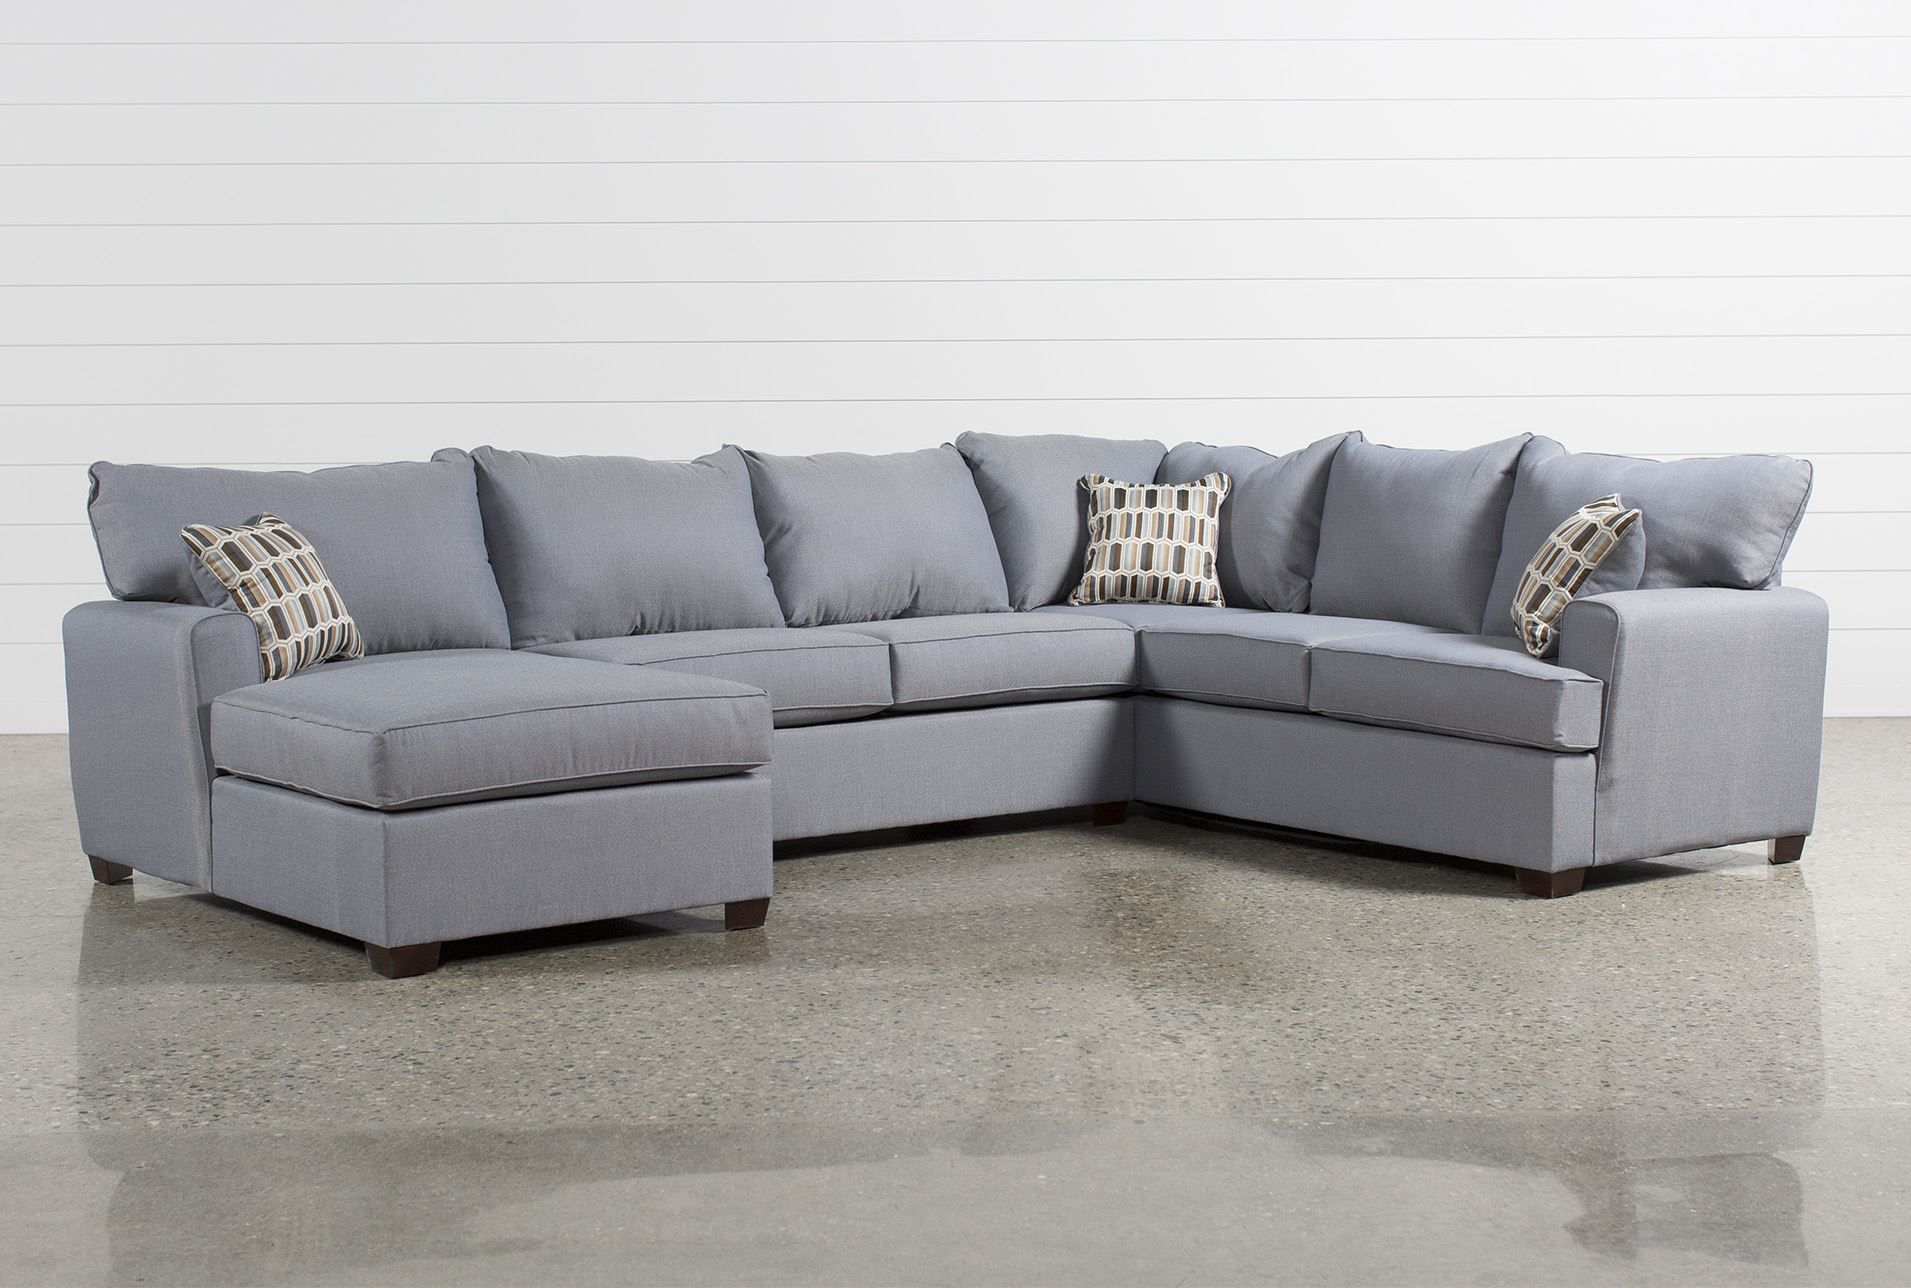 Bingham 3 Piece Sectional W/Laf Chaise   Living Spaces